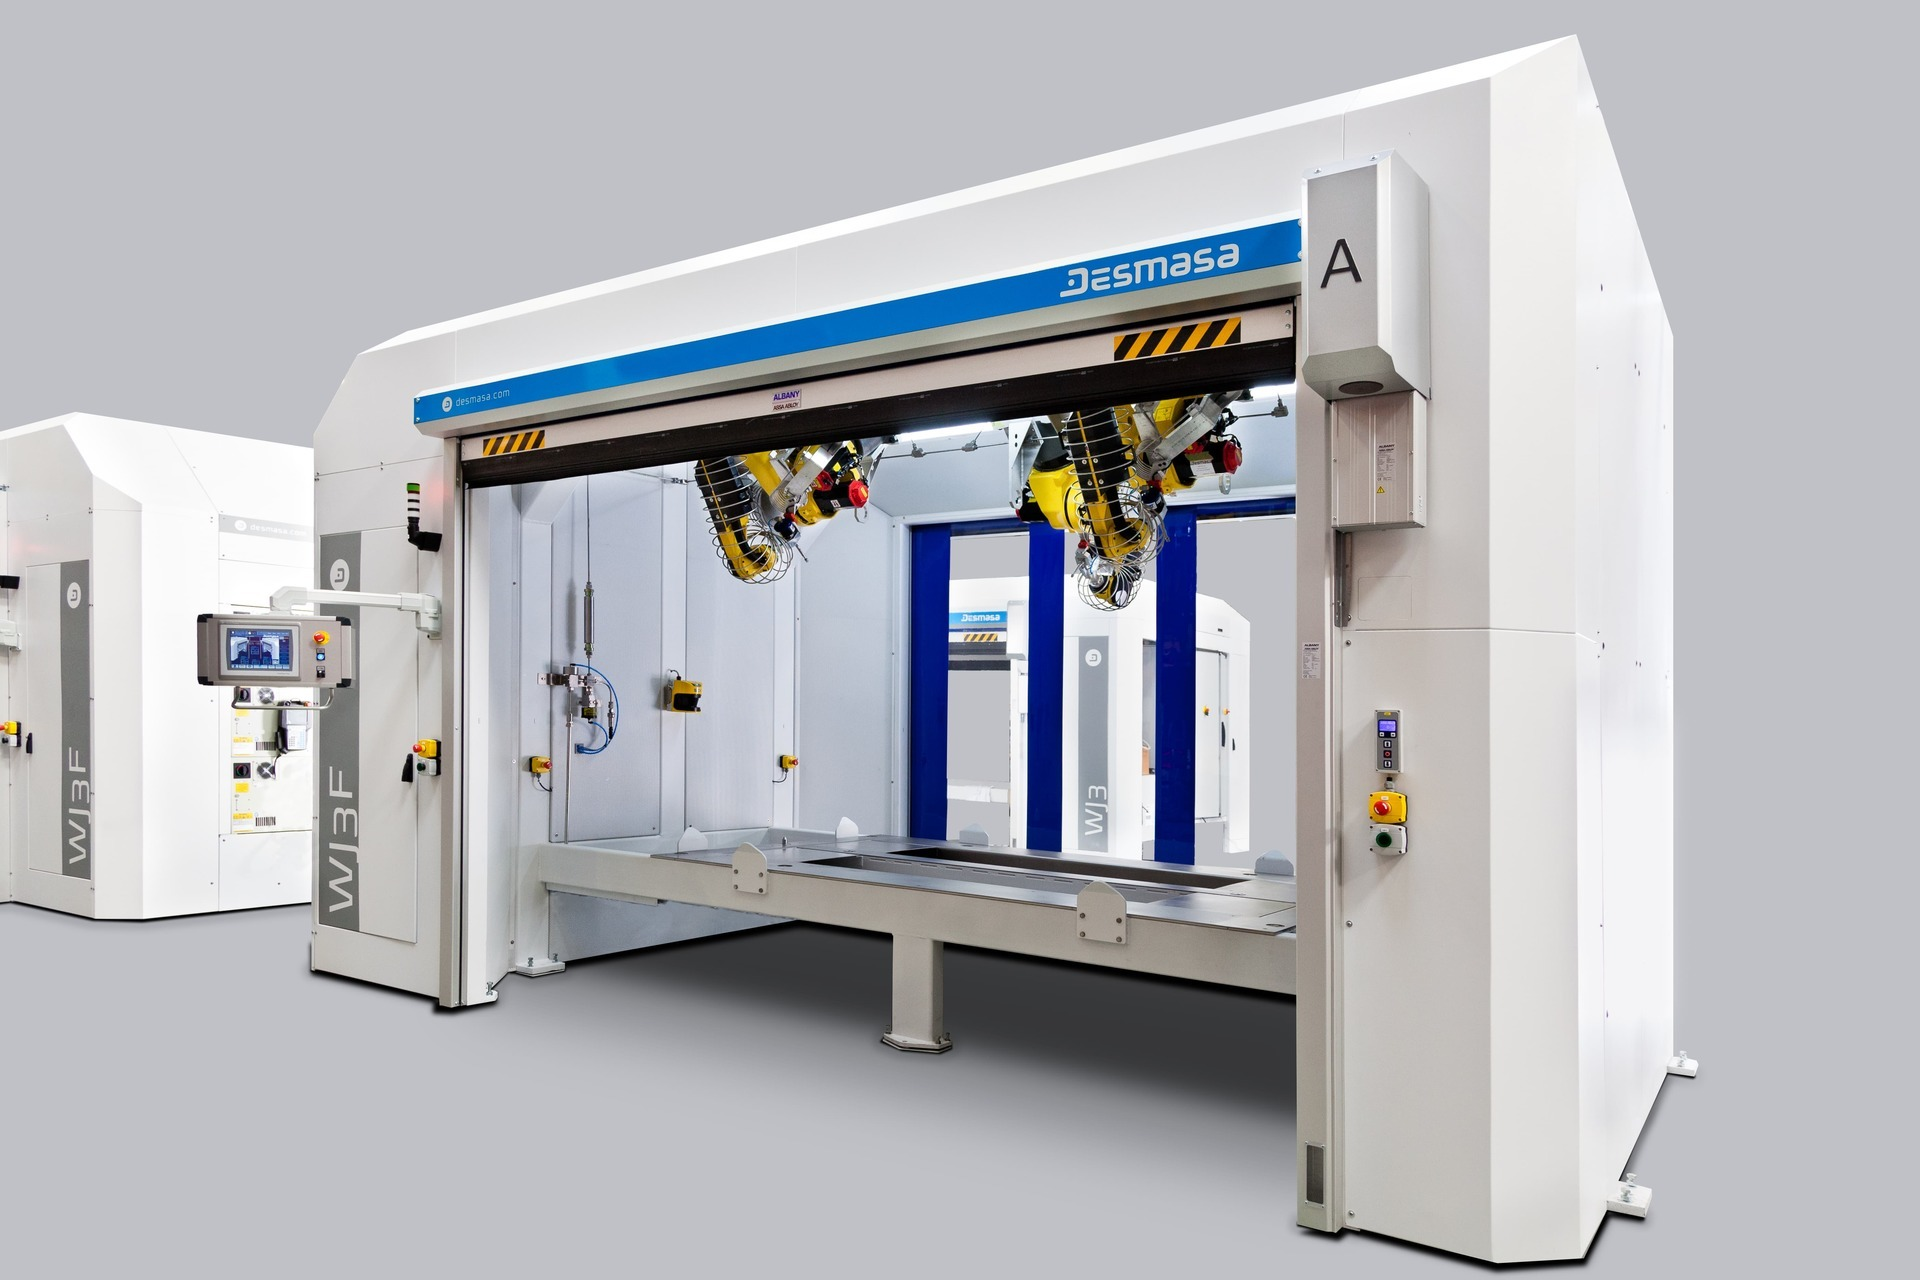 Waterjet station with ABB robot and vacuum system